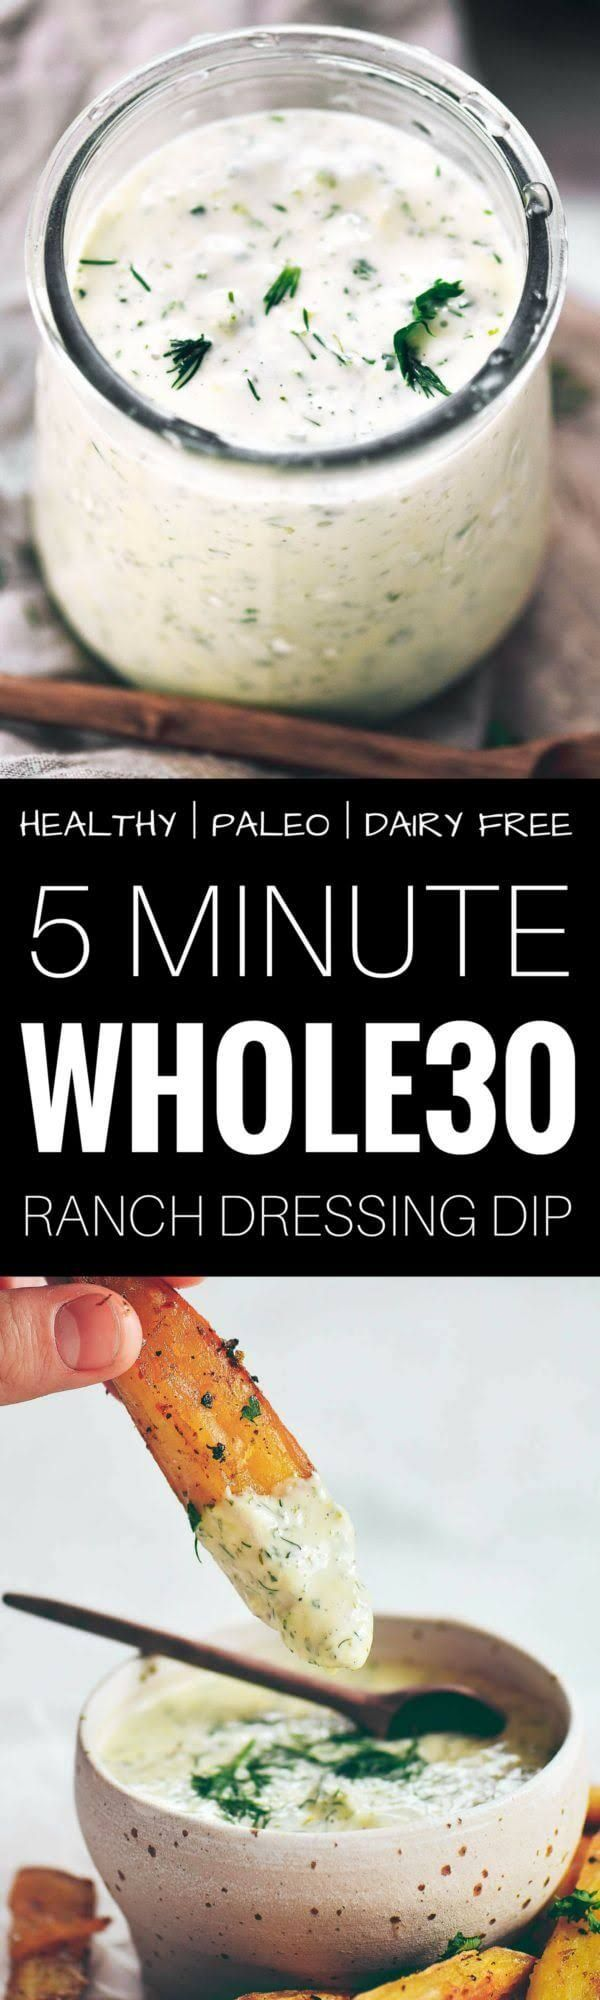 Creamy whole30 ranch dressing dip. Easy paleo ranch dressing recipe. Dairy free ranch dressing. Dairy free ranch dip. Best easy dairy free ranch recipe. Easy whole30 dinner recipes. Whole30 recipes. Whole30 lunch. Whole30 recipes just for you. Whole30 meal planning. Whole30 meal prep. Healthy paleo meals. Healthy Whole30 recipes. Easy Whole30 recipes.